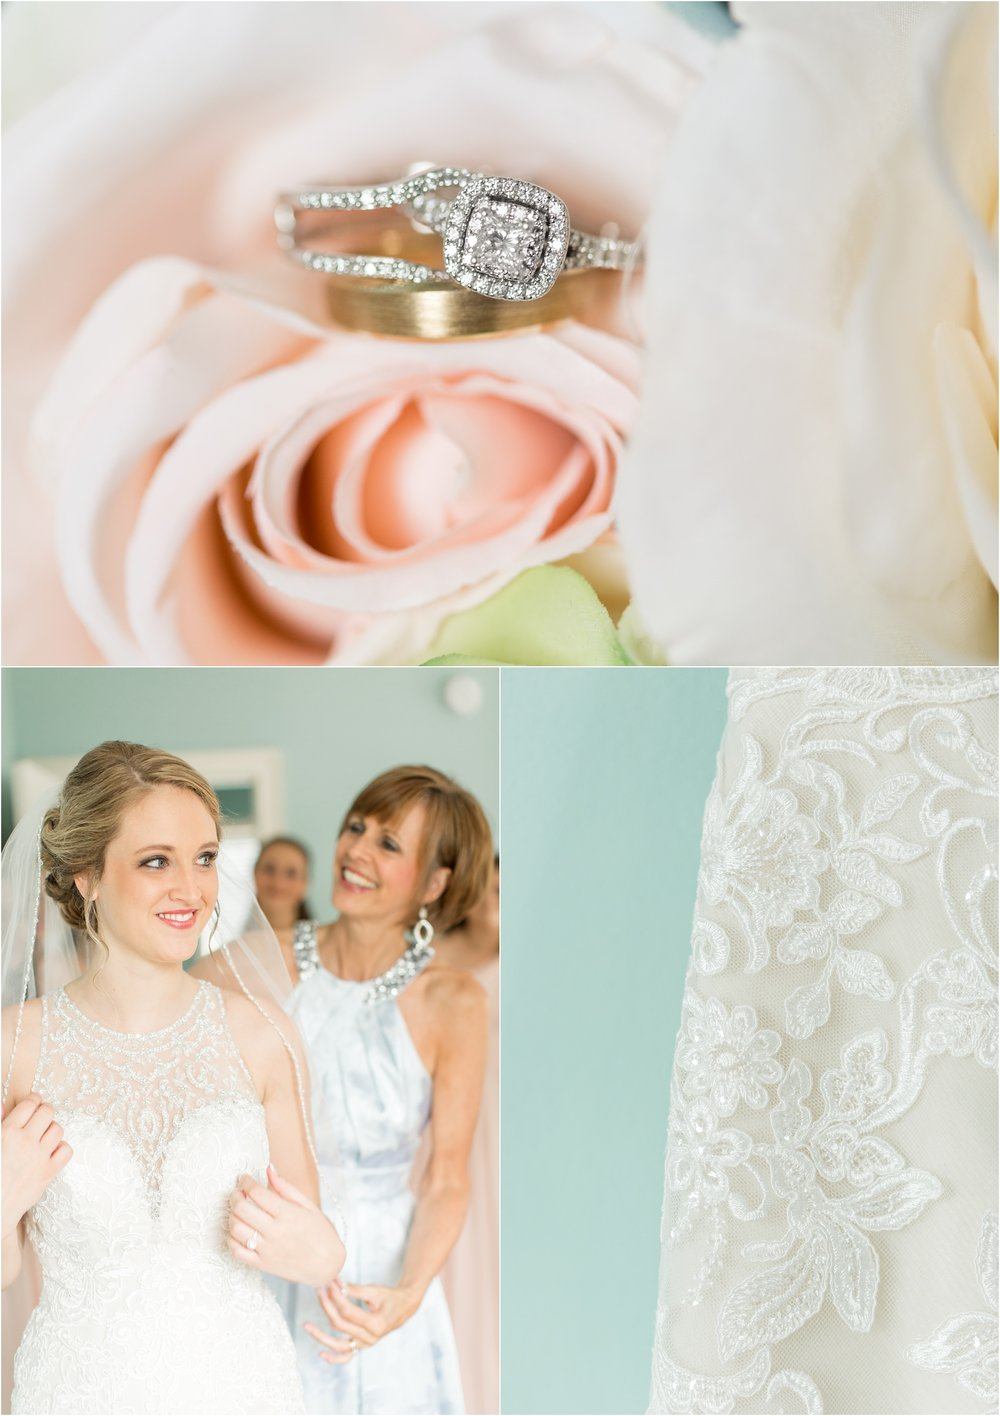 Savannah Eve Photography- Roper-Powell Wedding- Blog-4.jpg